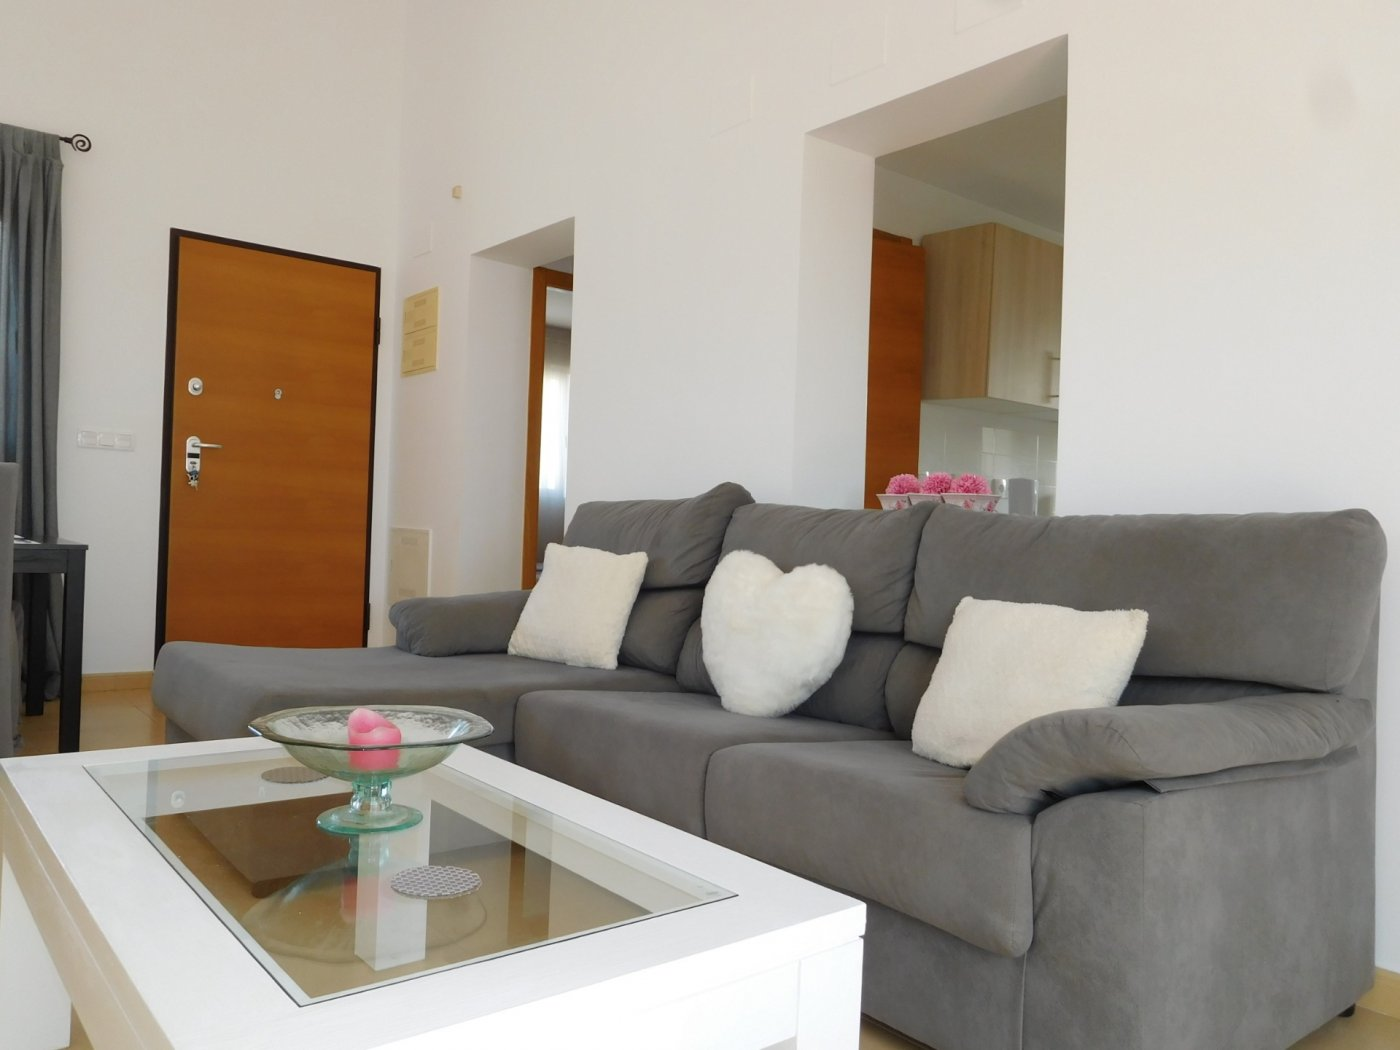 Gallery Image 8 of Casa For rent in Condado De Alhama, Alhama De Murcia With Pool